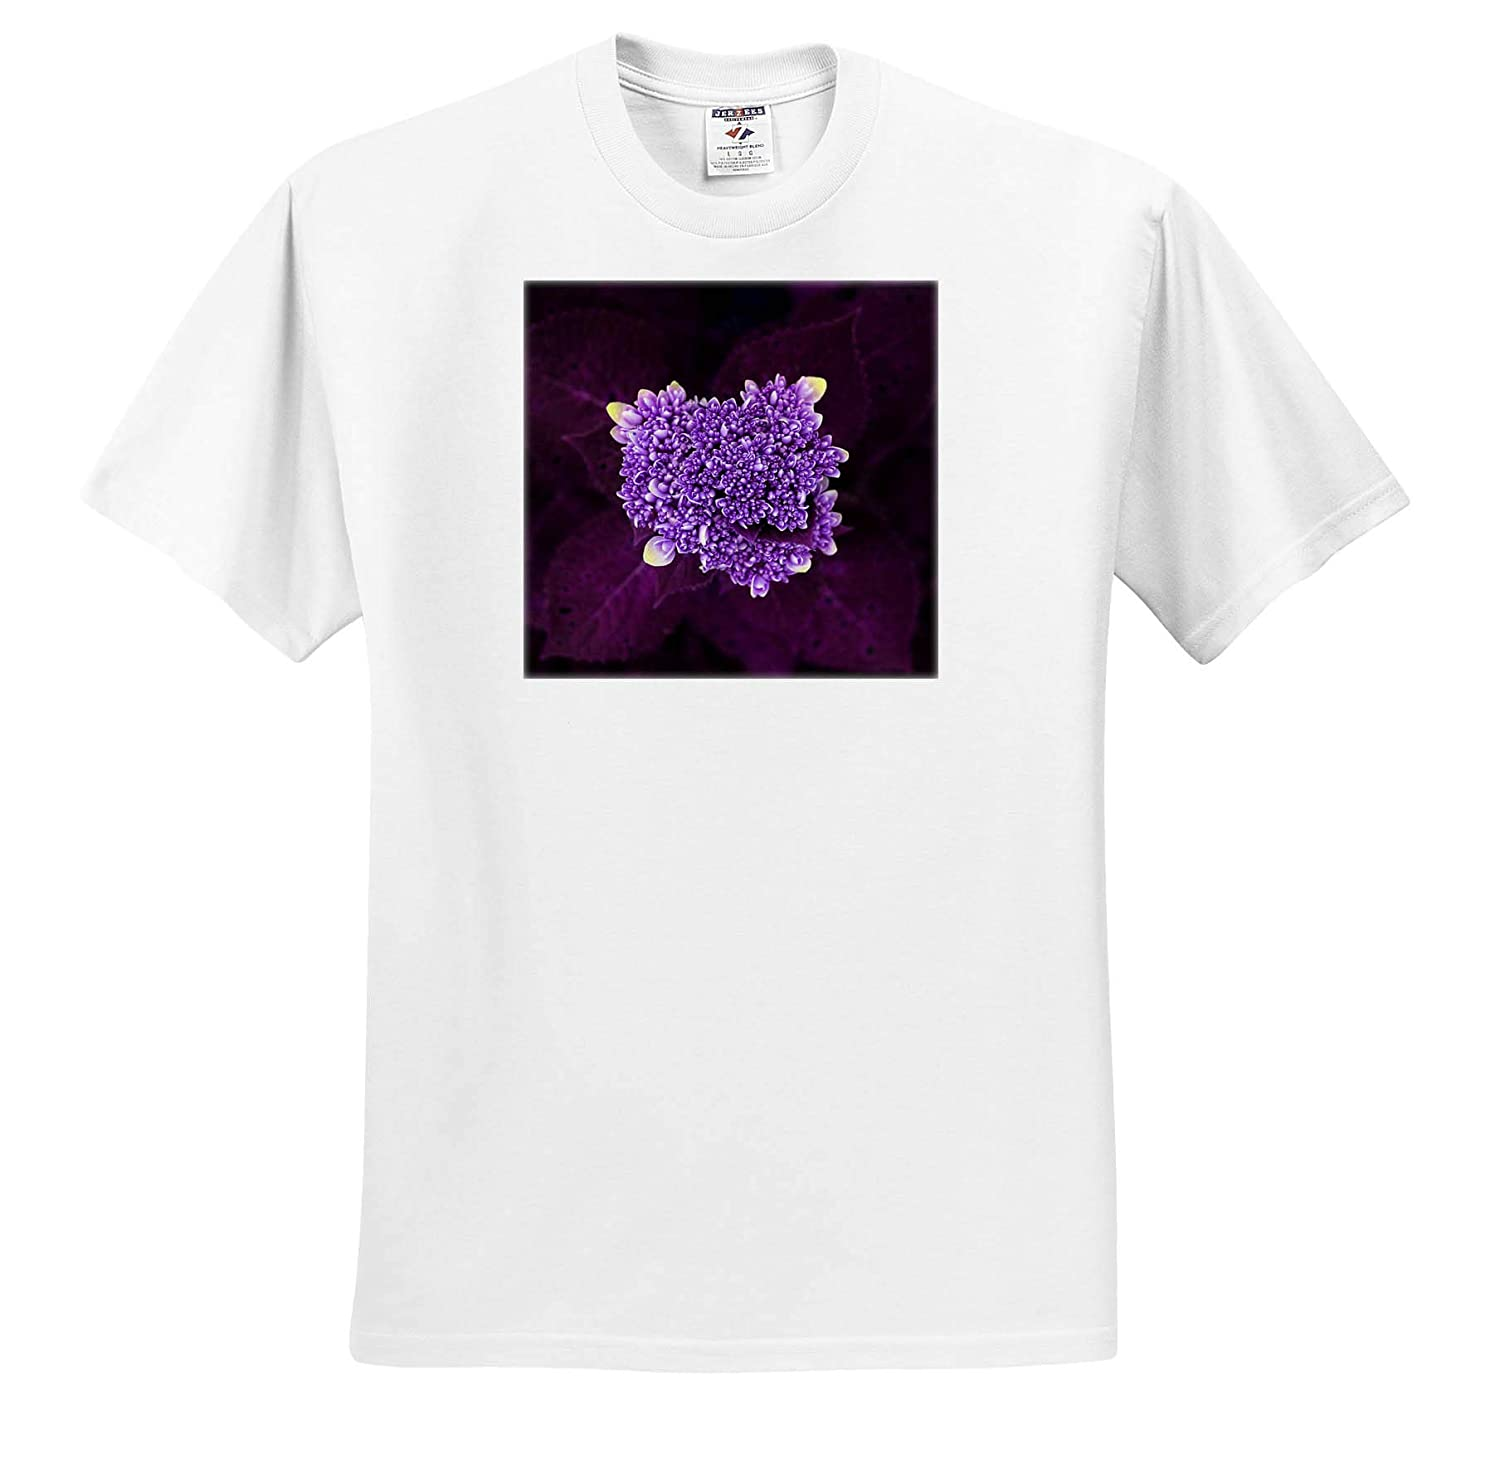 - T-Shirts Close up Photo of a Hydrangea Flower About to Burst in Purple 3dRose Stamp City Flowers